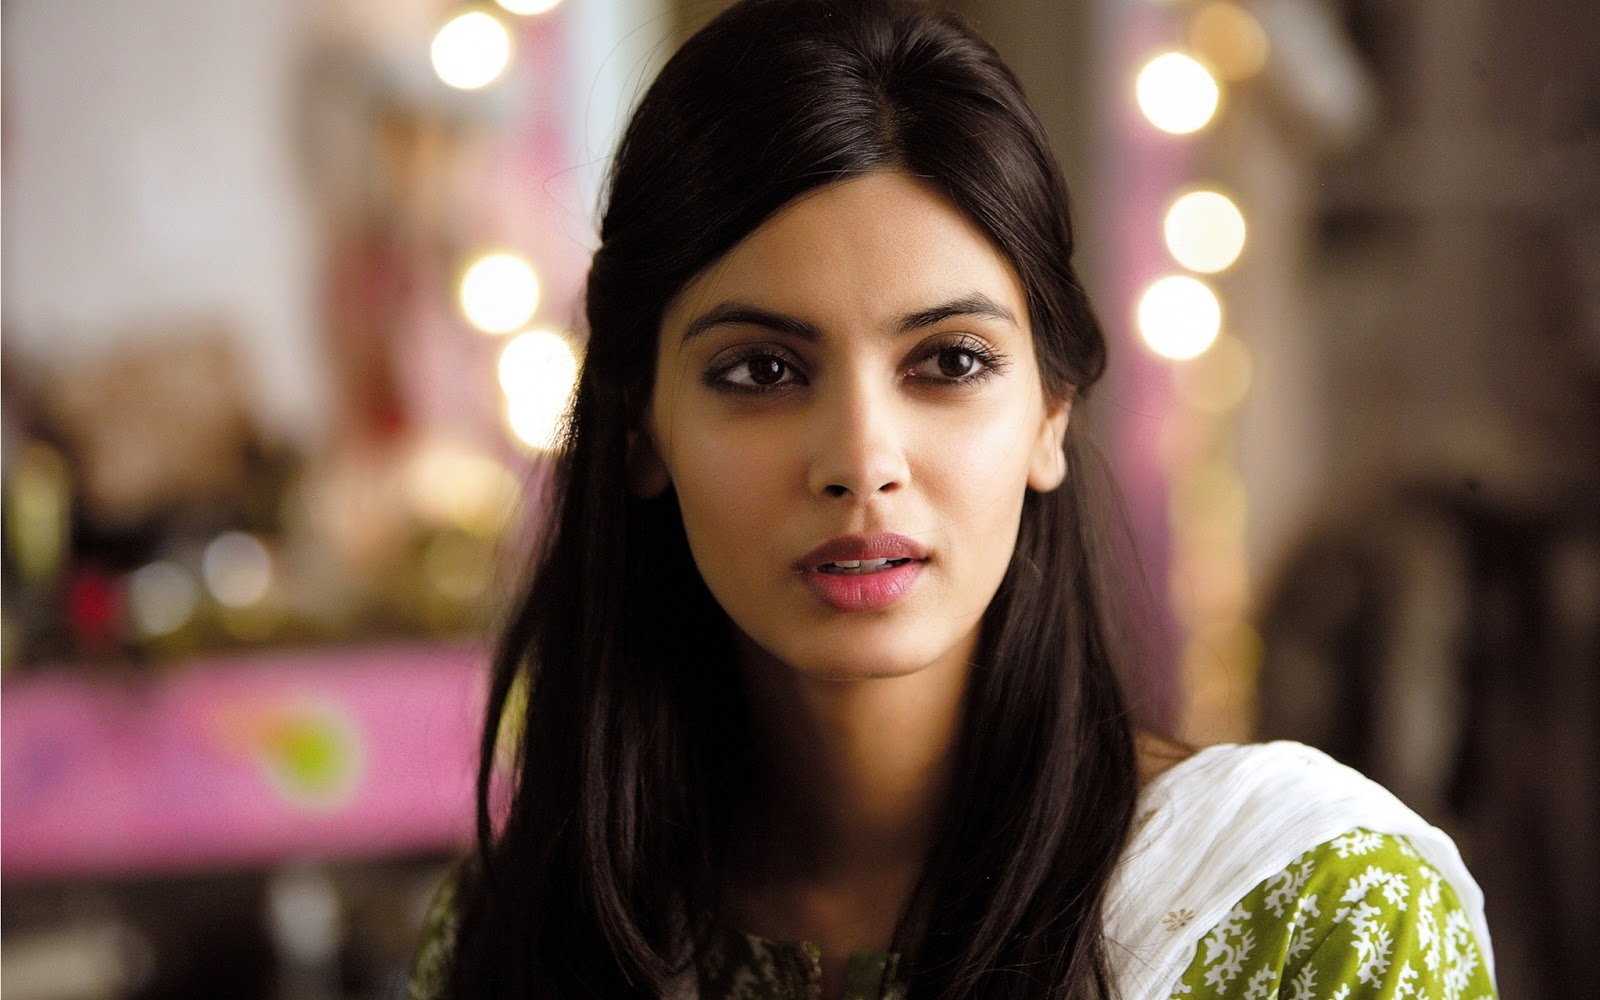 diana penty new bollywood actress hd desktop wallpaper